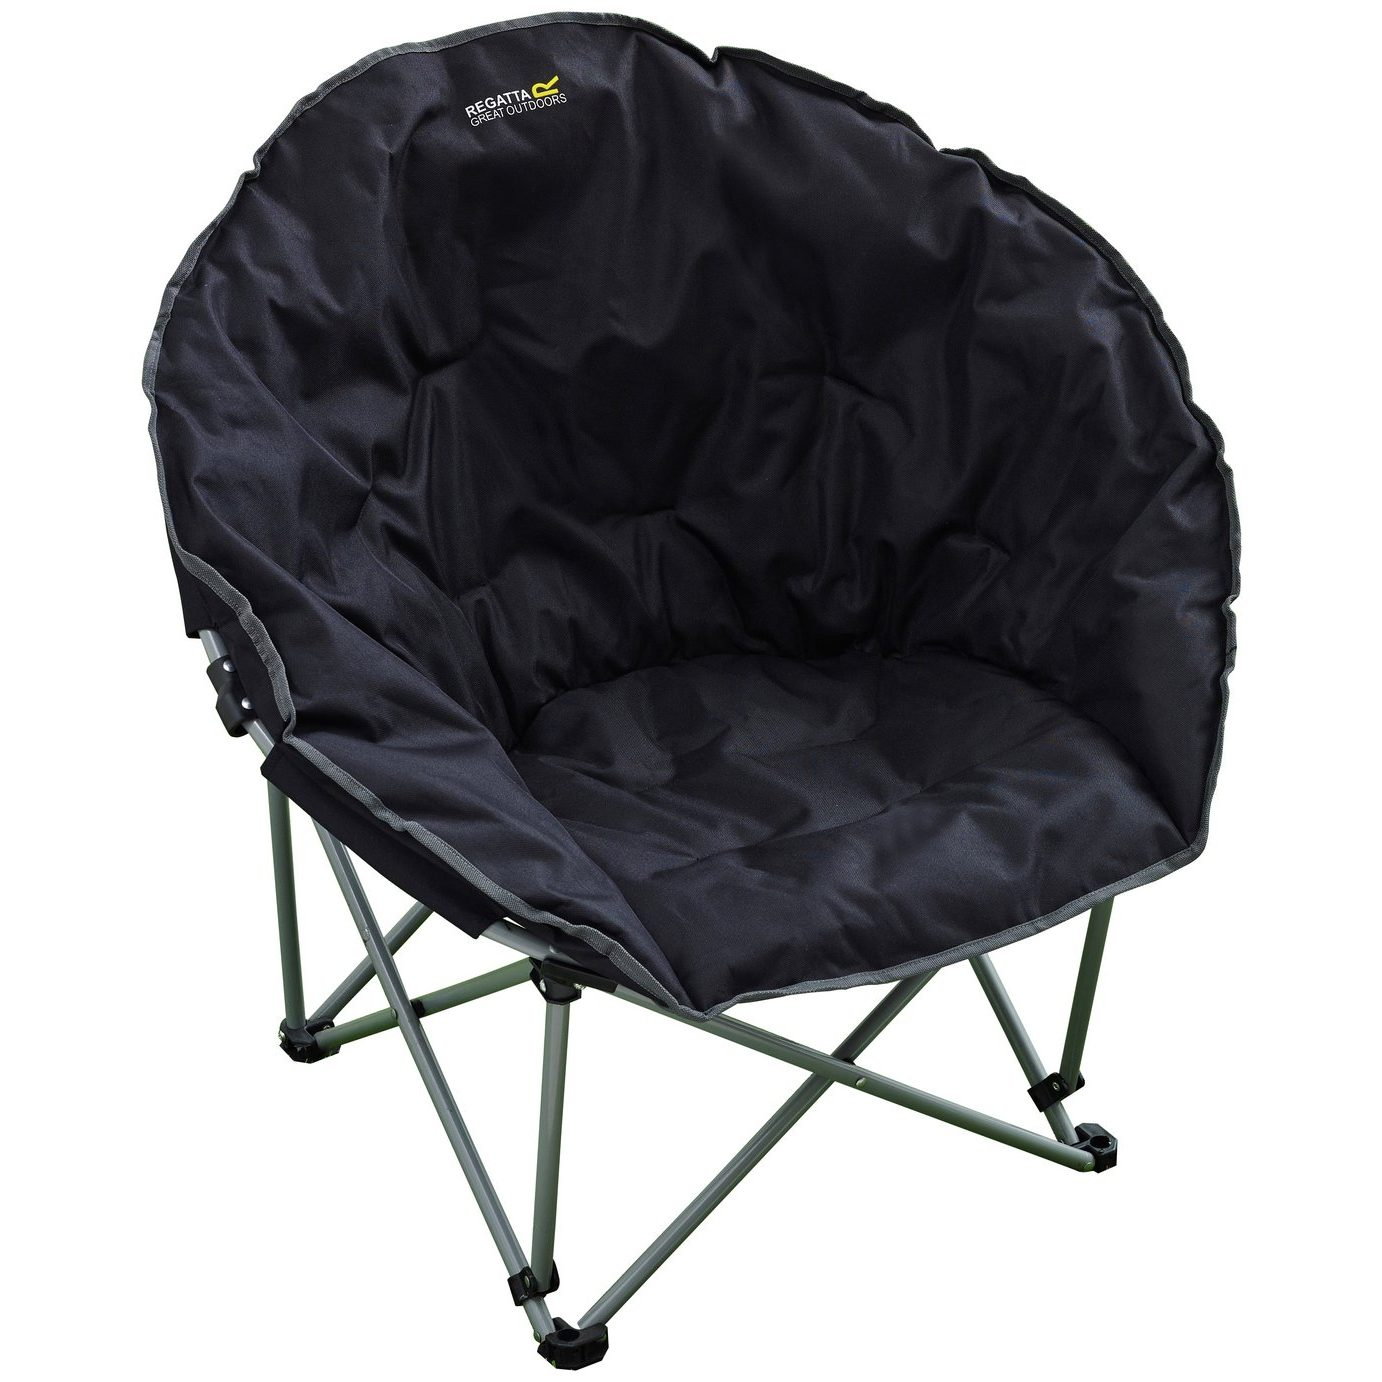 most comfortable camping chair king kokoda review the best chairs and loungers telegraph black padded